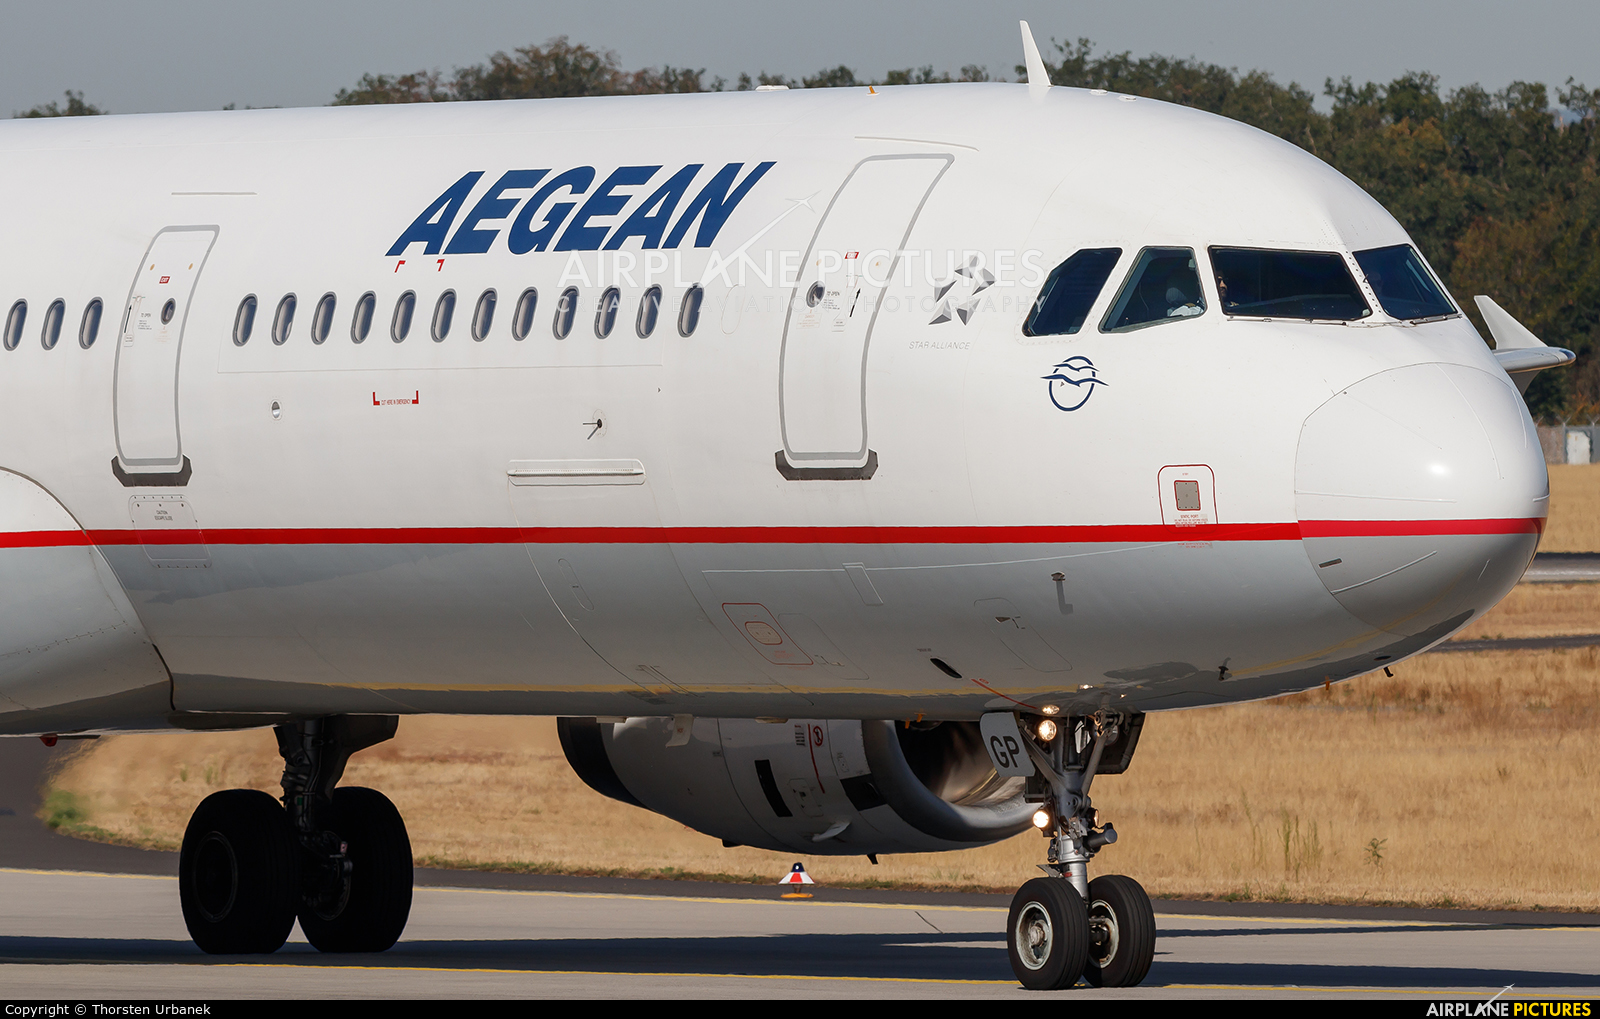 Aegean Airlines SX-DGP aircraft at Frankfurt